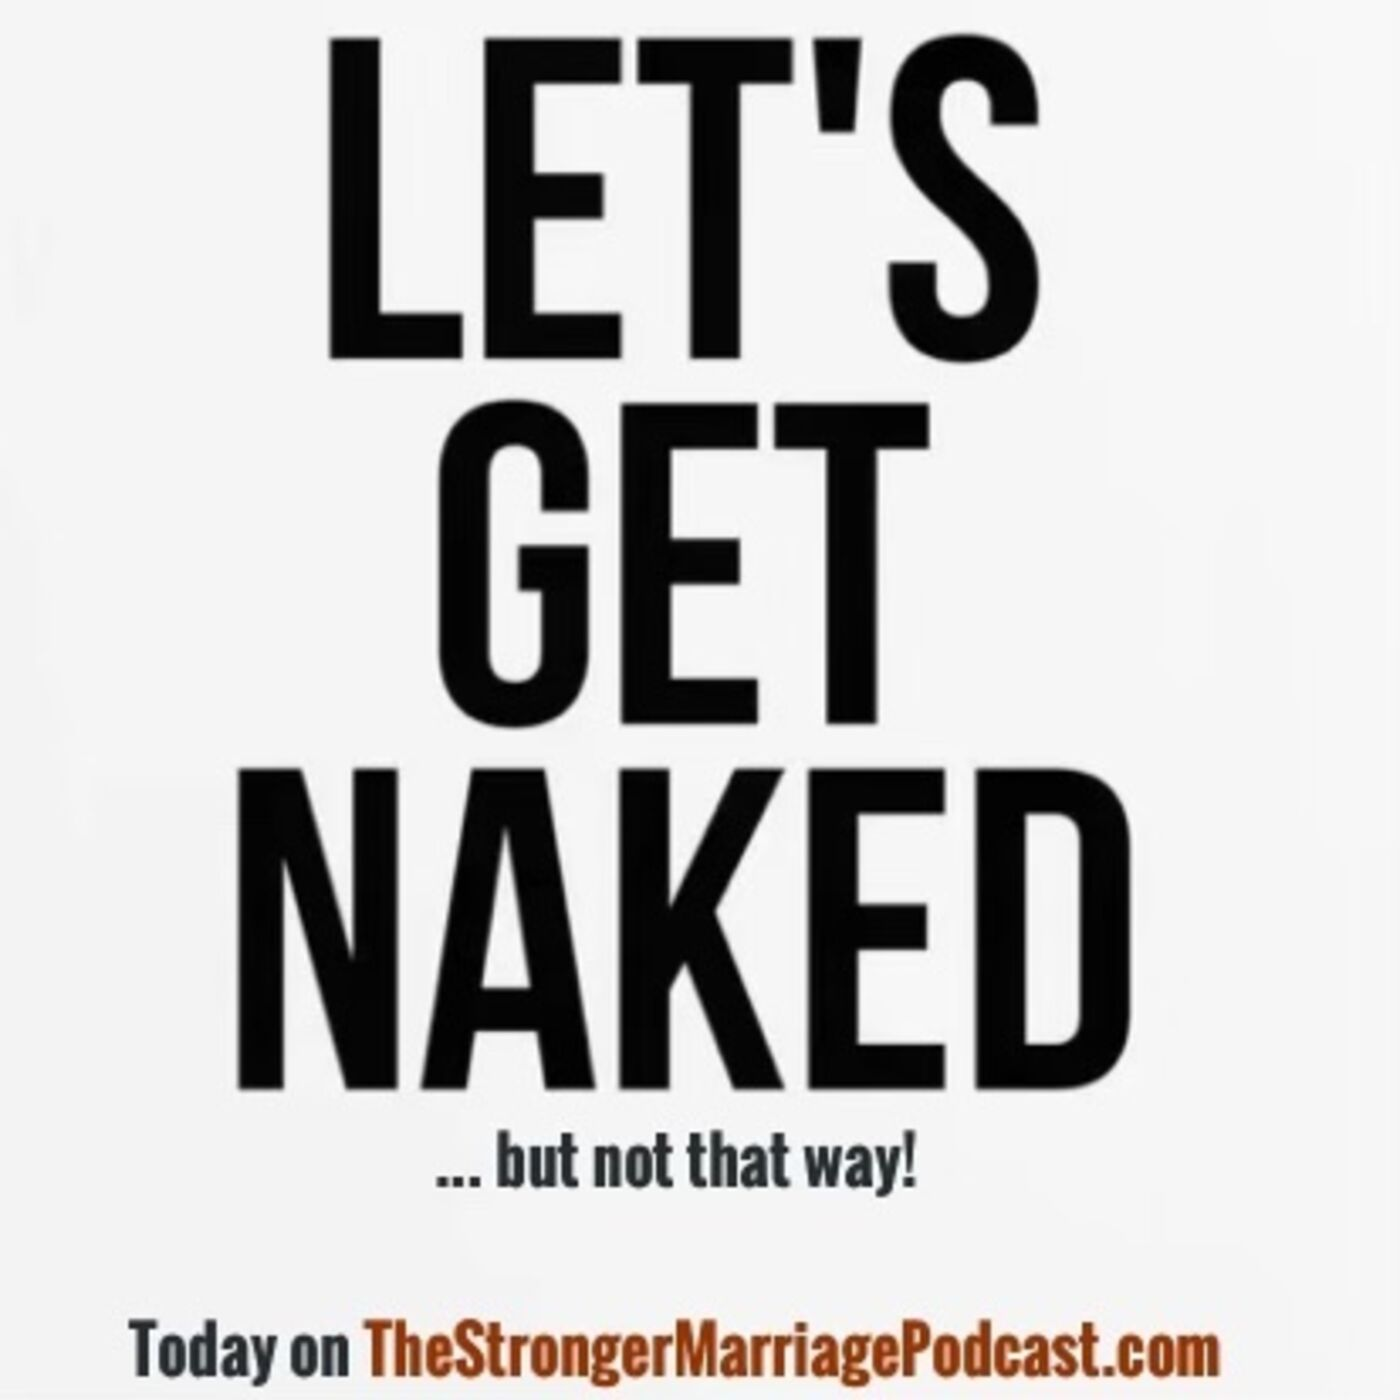 Let's Get Naked ... but NOT That Way!